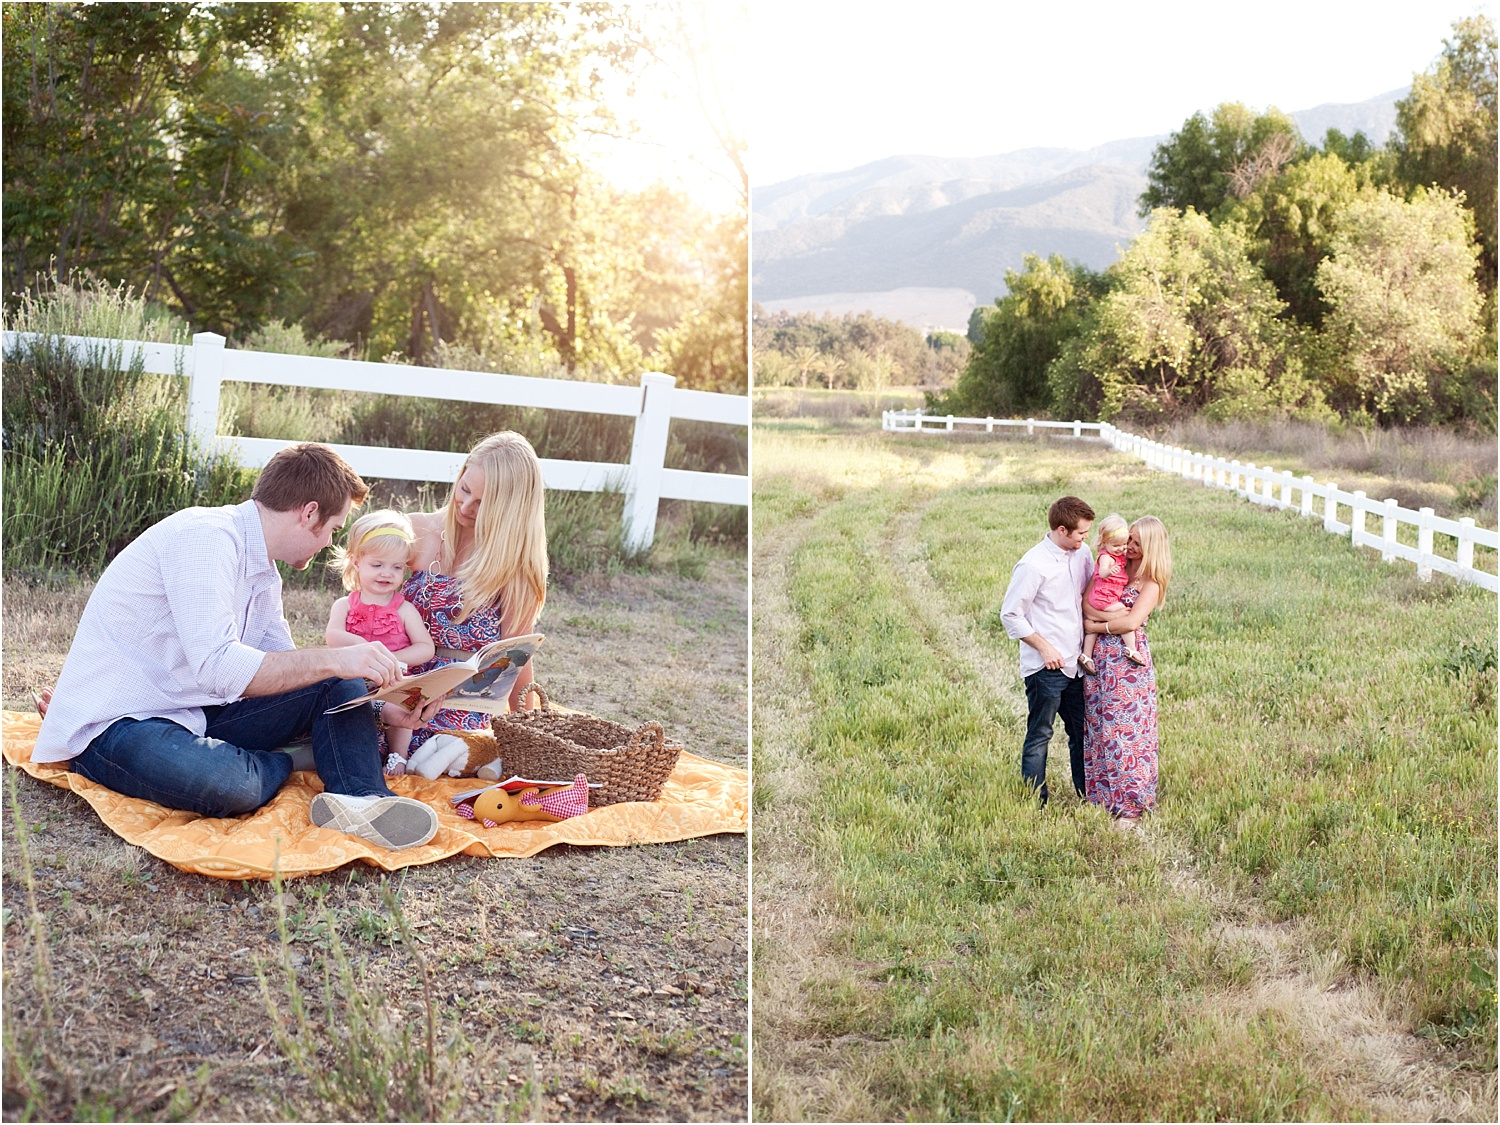 1 - Photographing Mini-Sessions